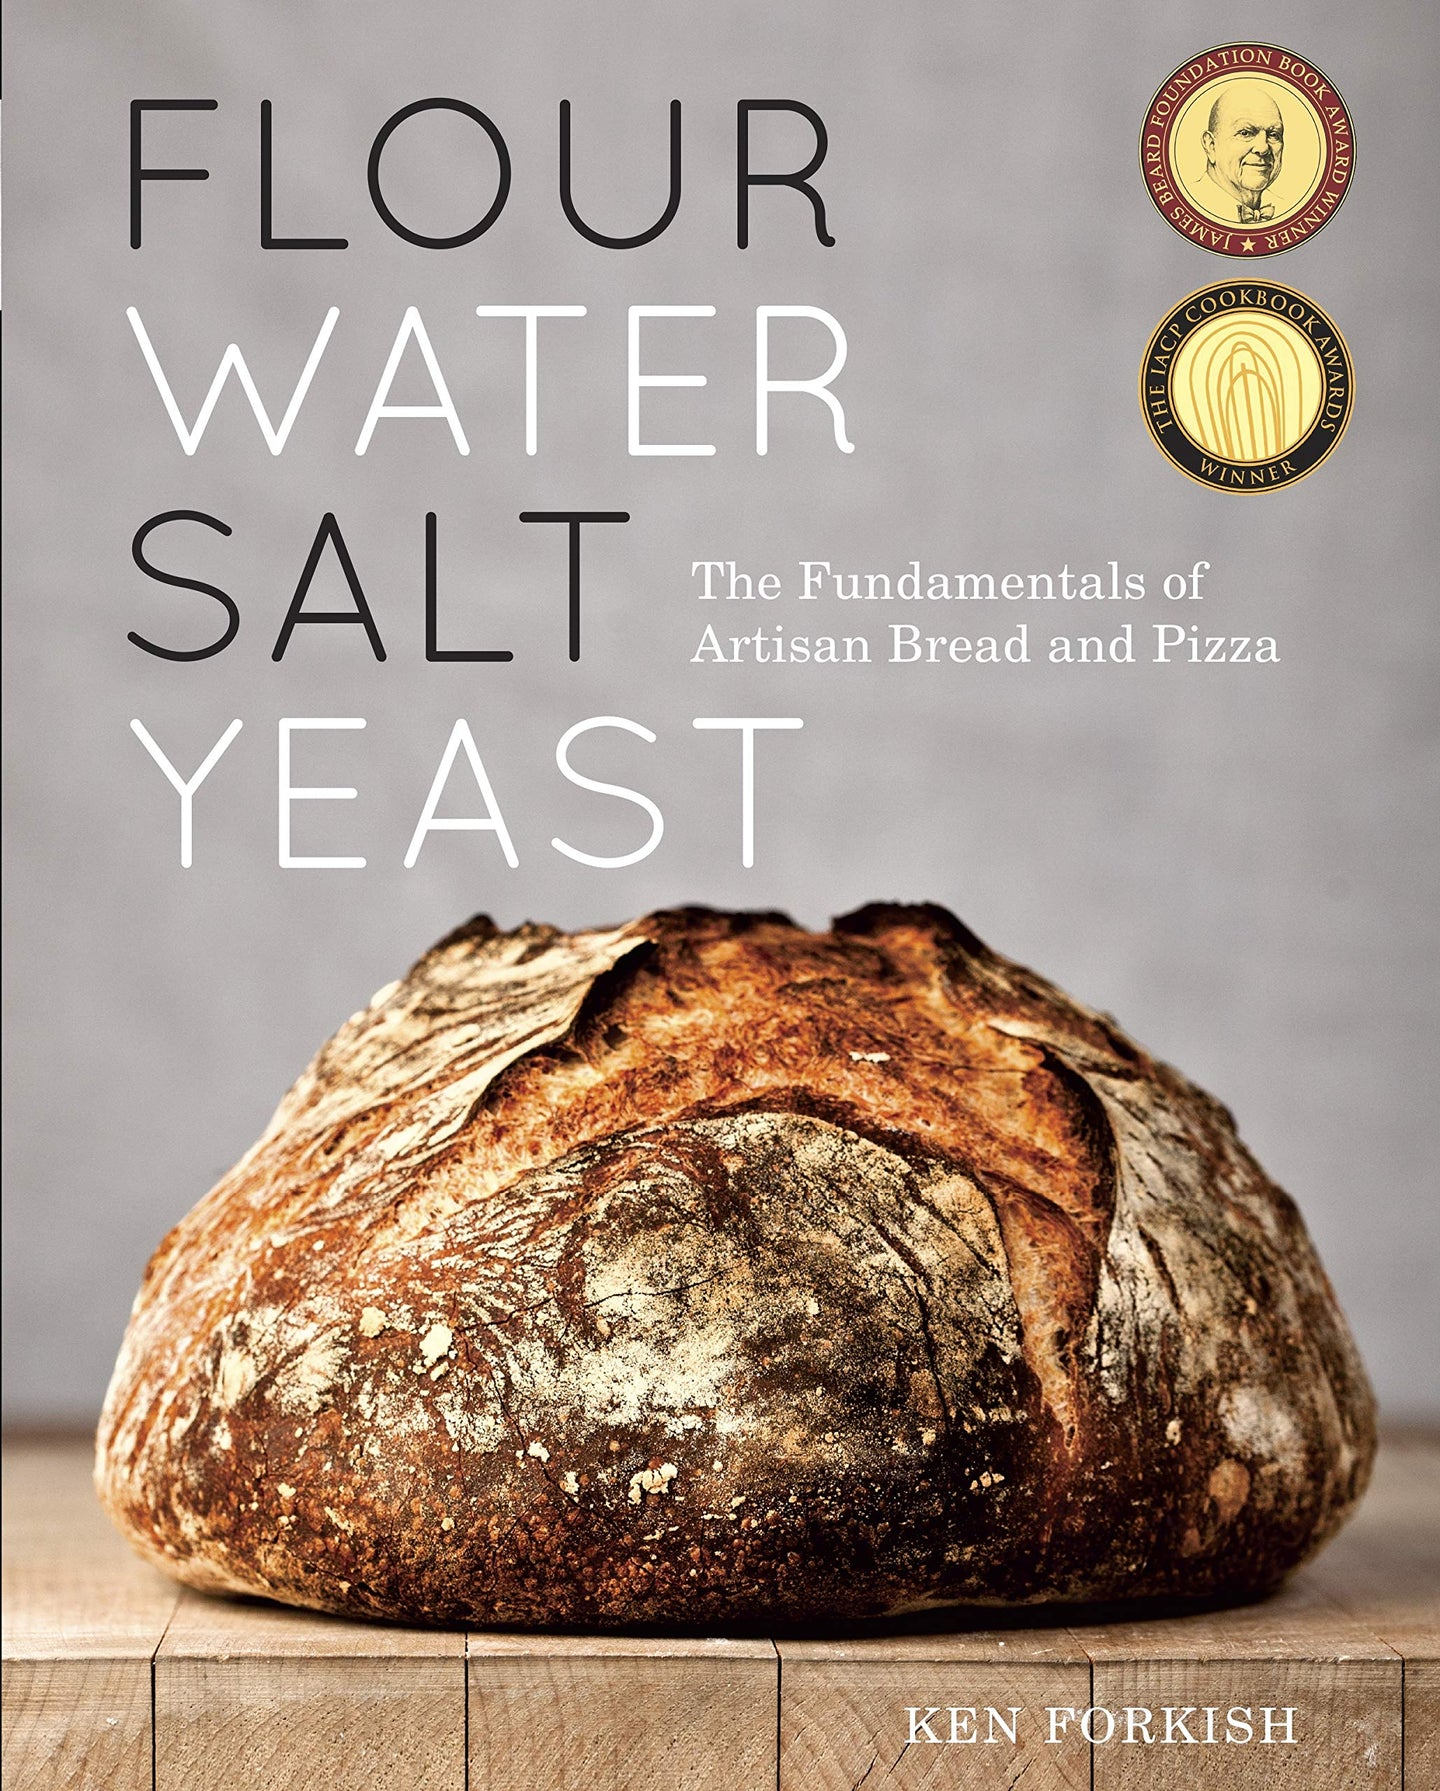 Flour Water Salt Yeast: The Fundamentals of Artisan Bread and Pizza - Ken Forkish